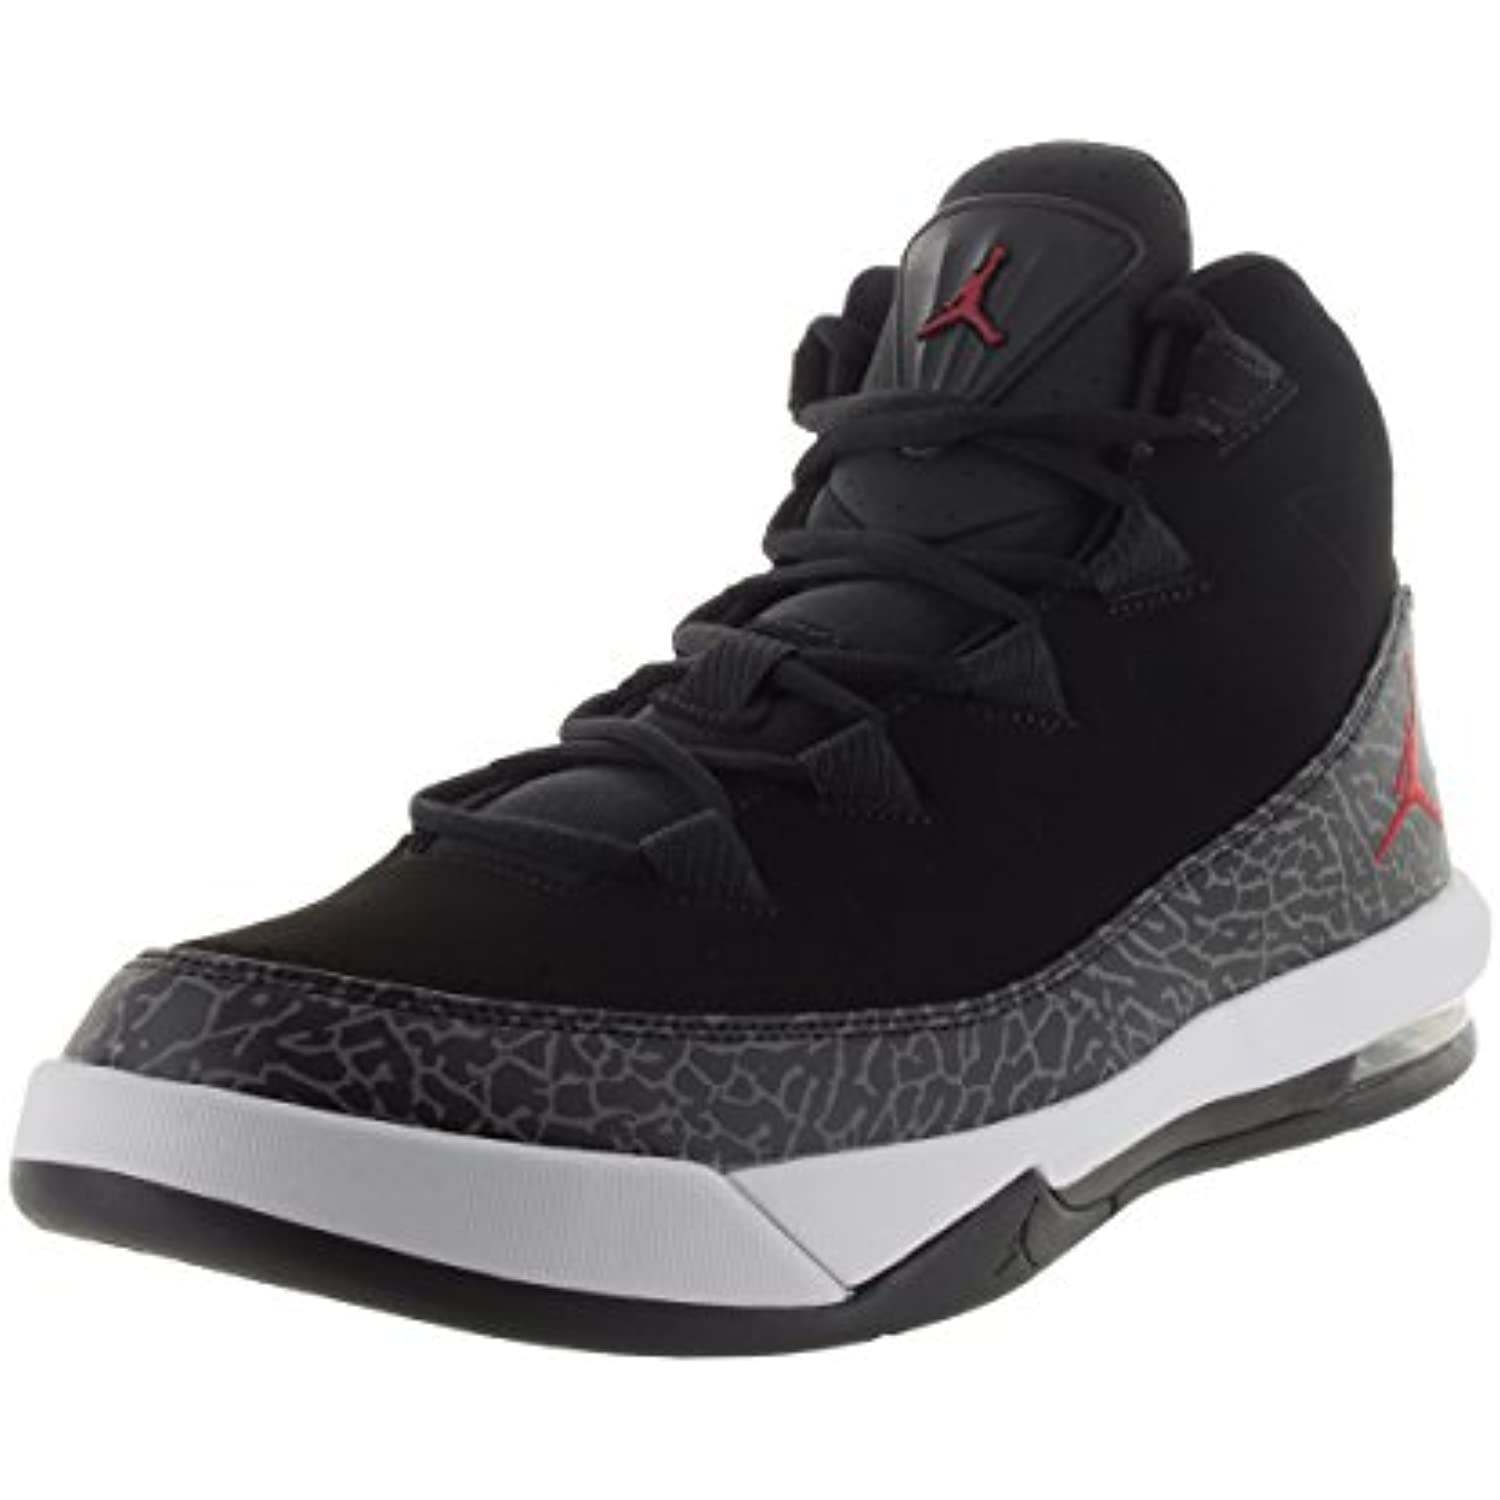 3add3bfd1c NIKE Jordan Air Deluxe, Chaussures de Sport Homme Homme Homme B0184I8NTE -  378522